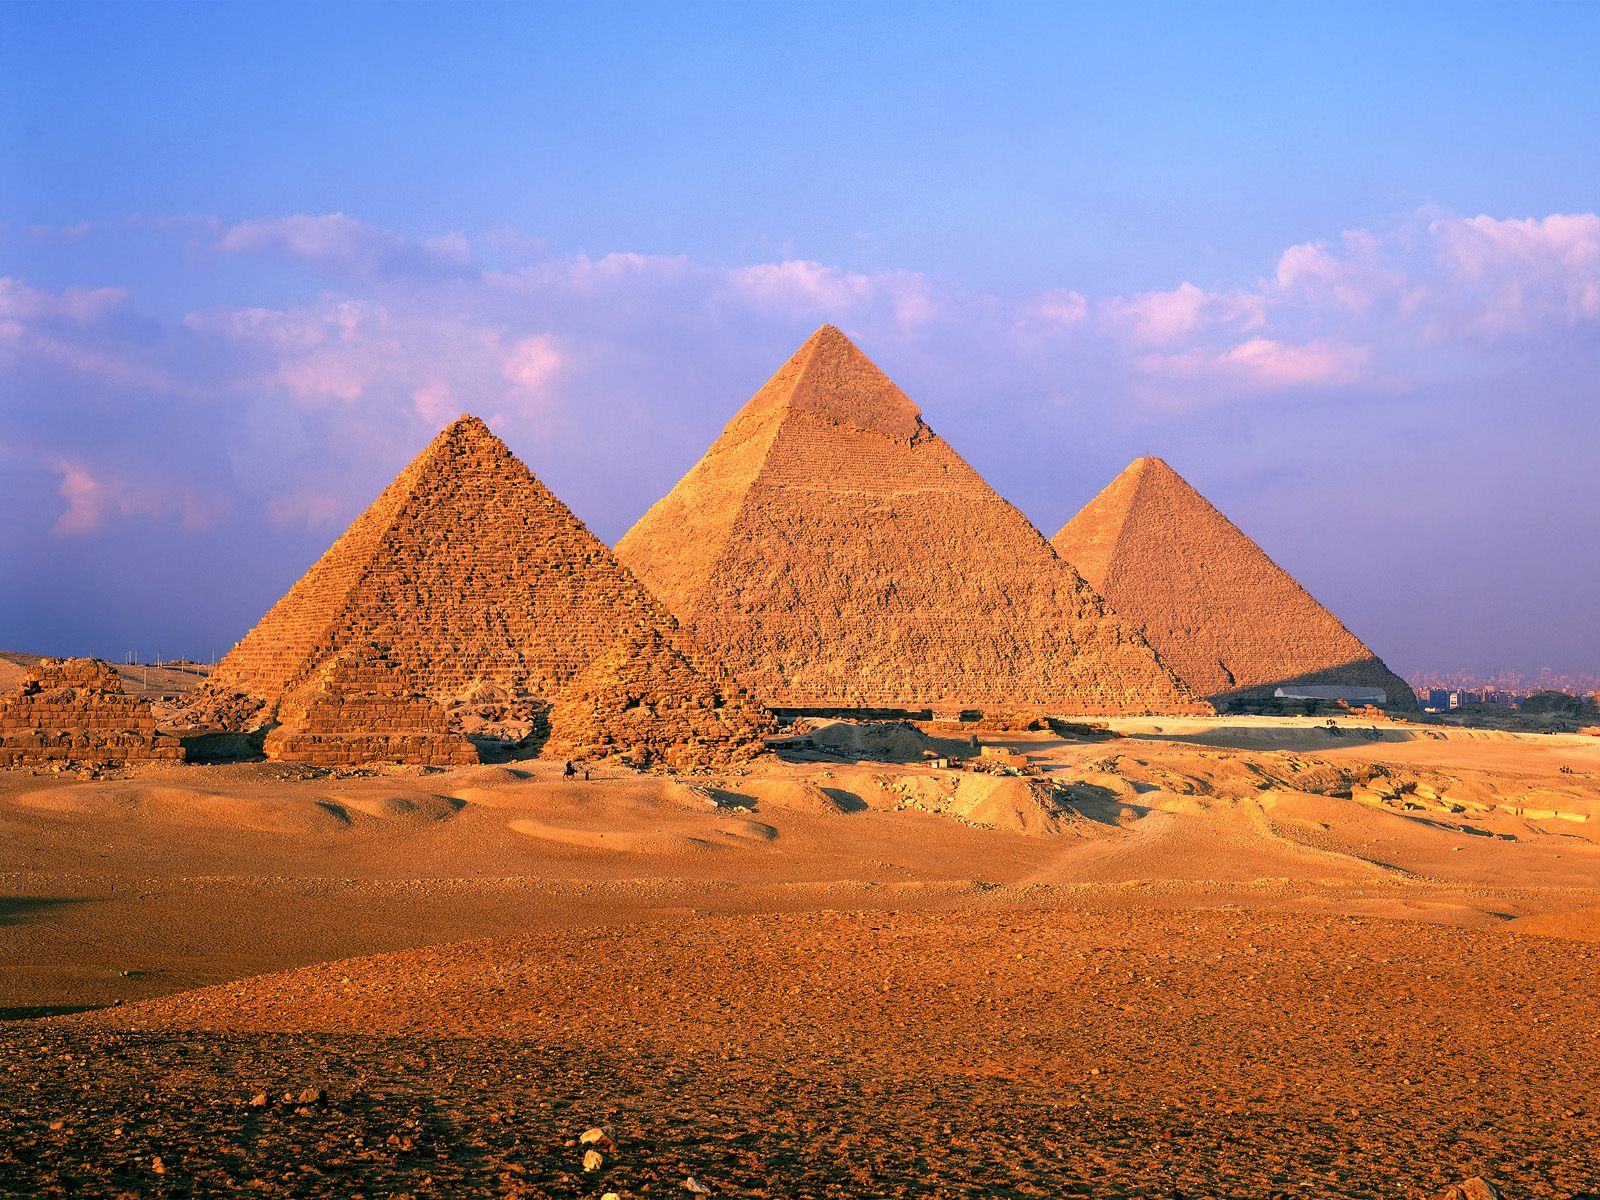 Pyramids of Giza Egypt Wallpapers | HD Wallpapers